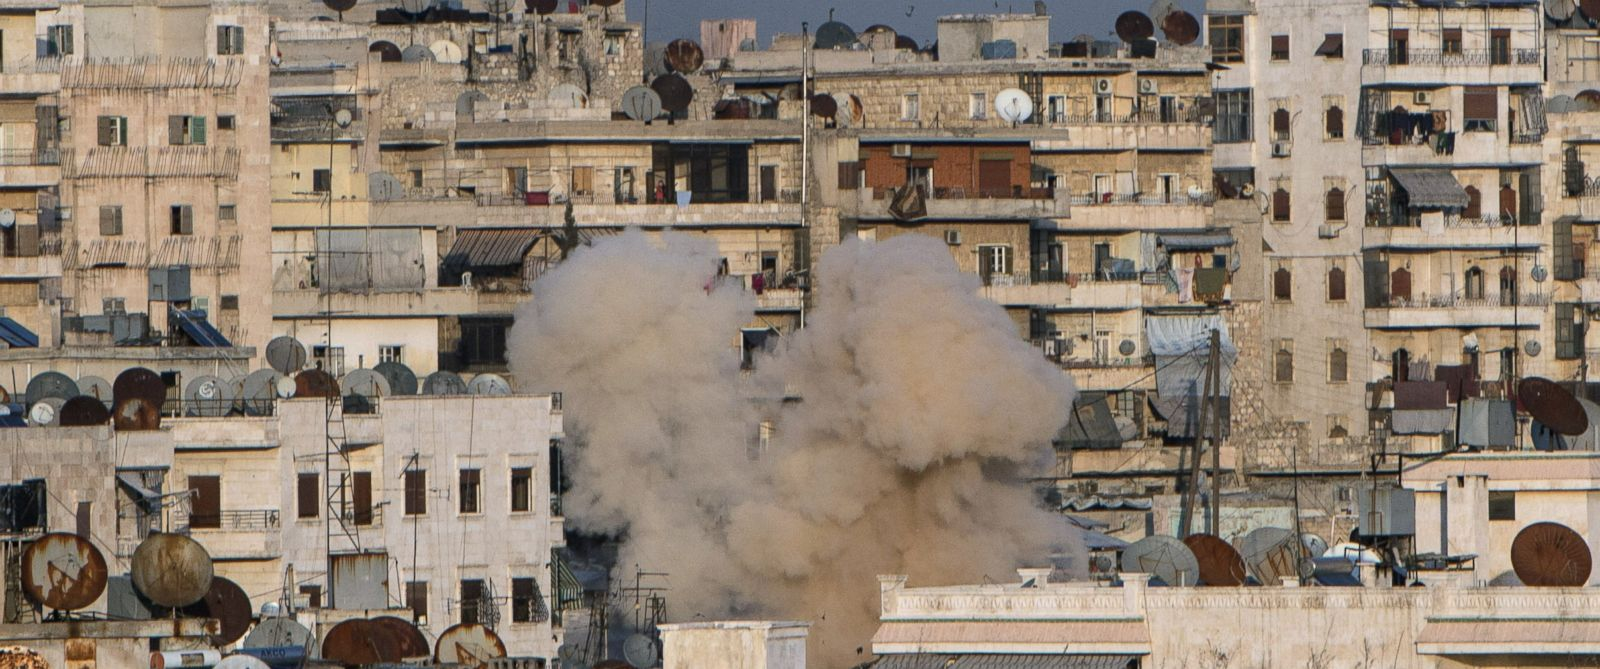 PHOTO: Gas cylinder shelling in a residential area of Aleppo, Syria, Feb. 18, 2016.